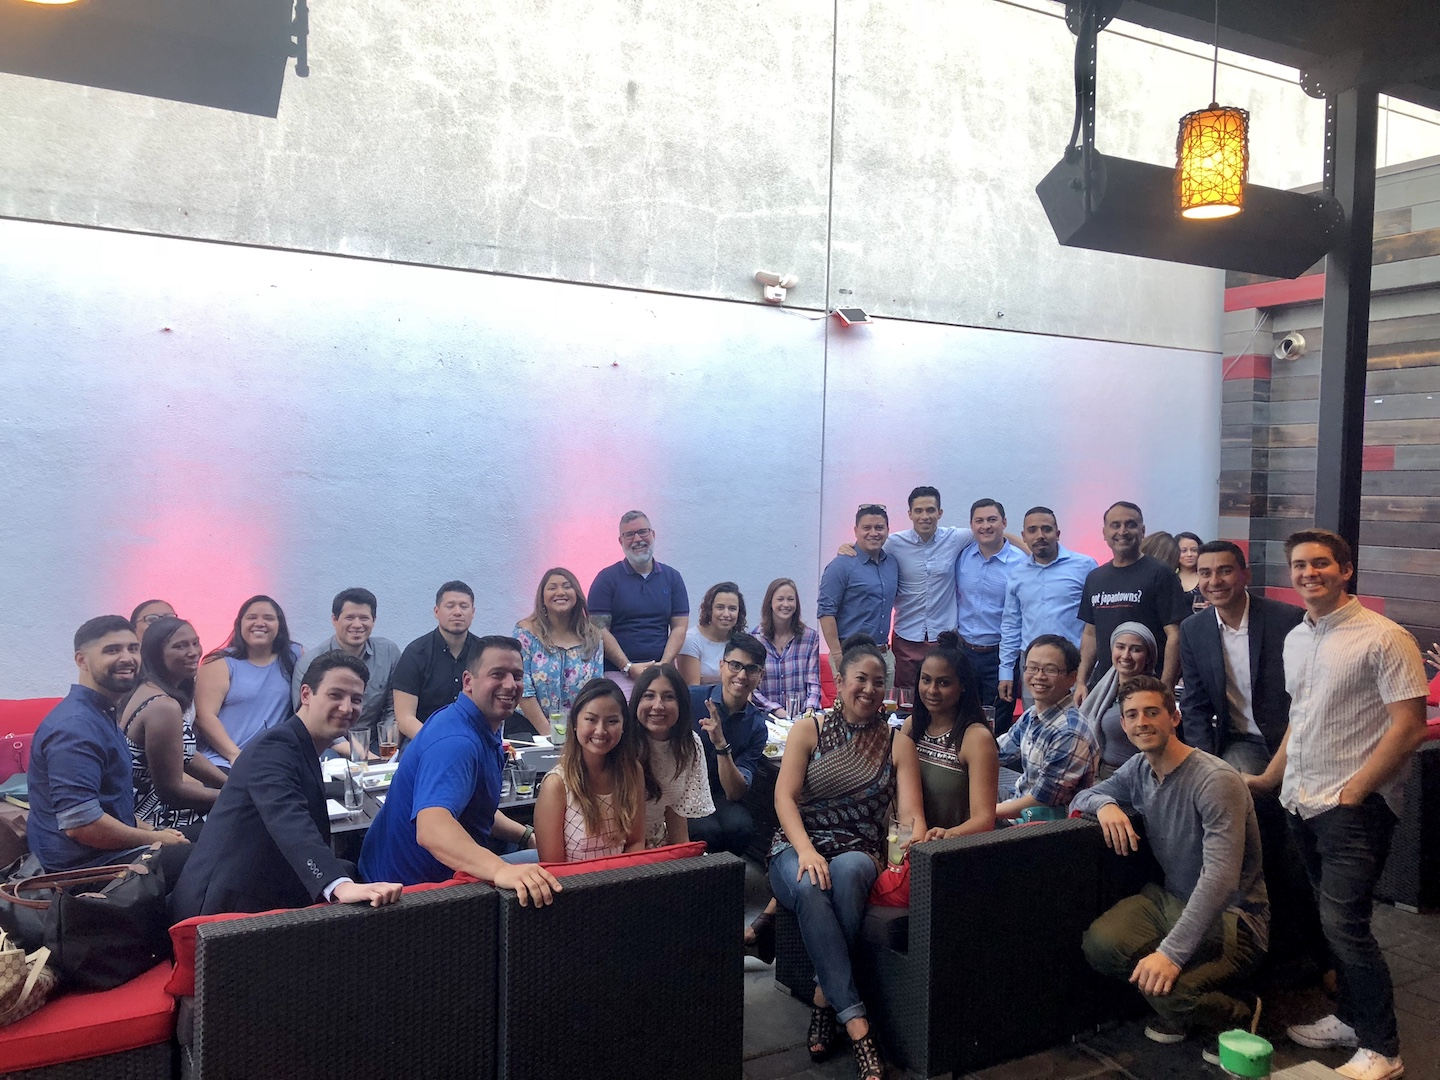 NLC Silicon Valley hosts events throughout the Bay Area, including our Institute sessions, social mixers, fundraisers, and networking happy hours. Join us!